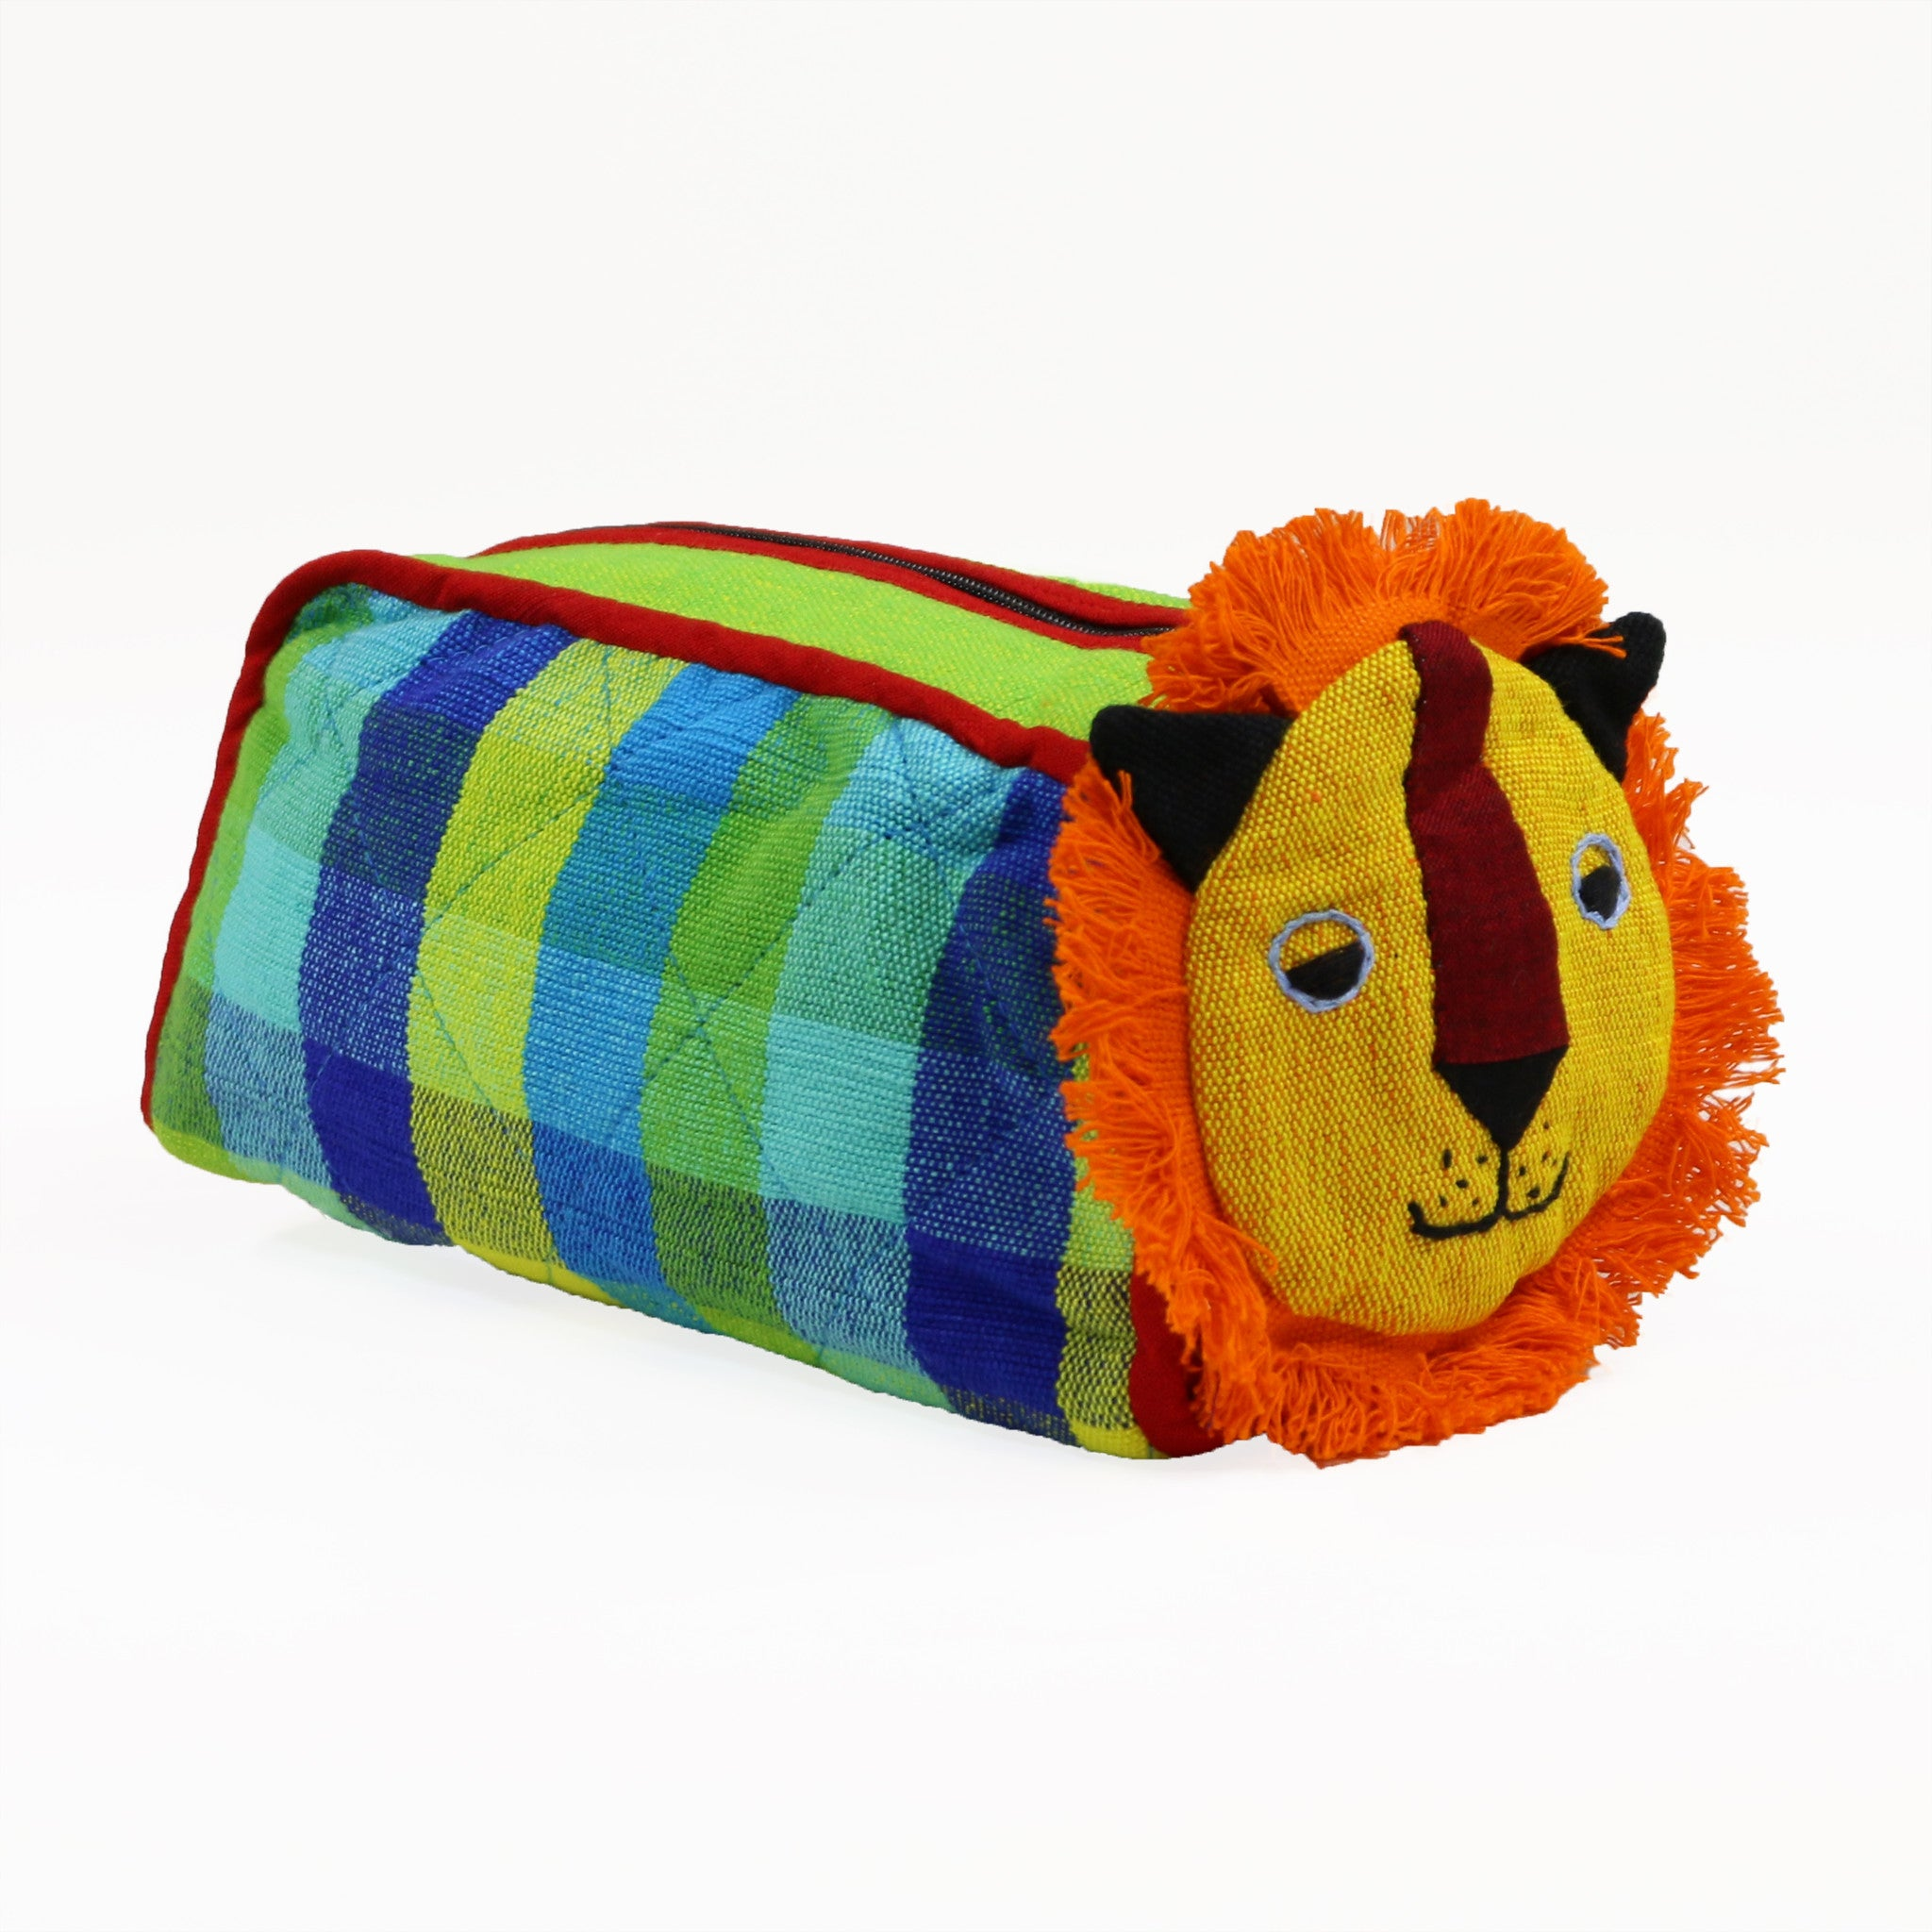 Lion Zip Pouch - Grasshopper fabric